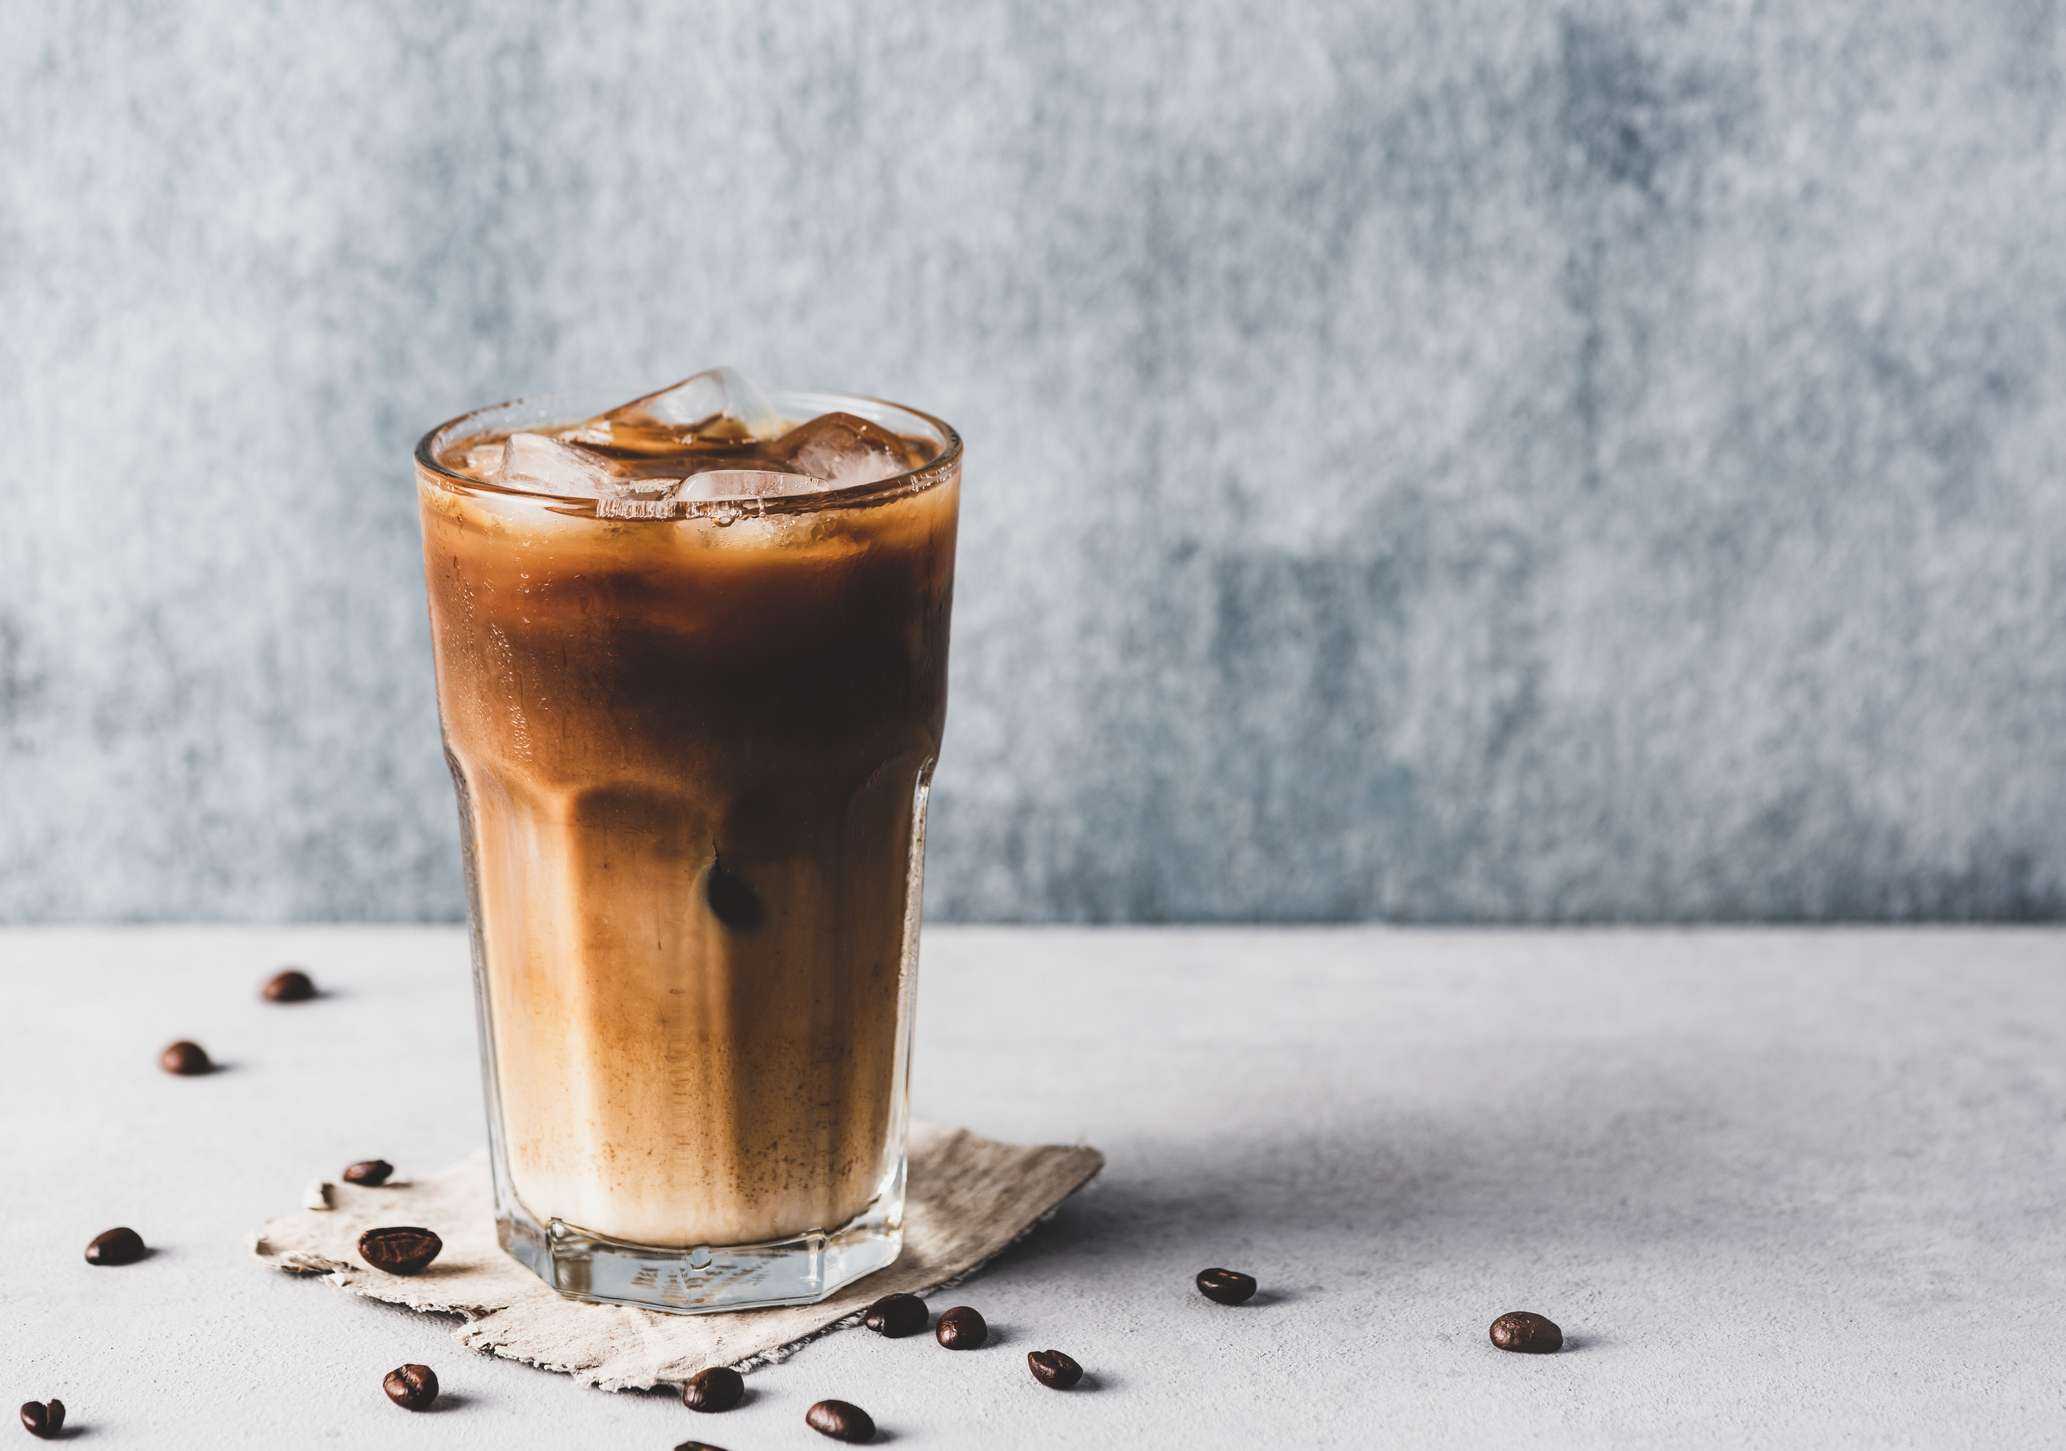 La differenza tra cold brew e il caffè freddo (iced coffee)